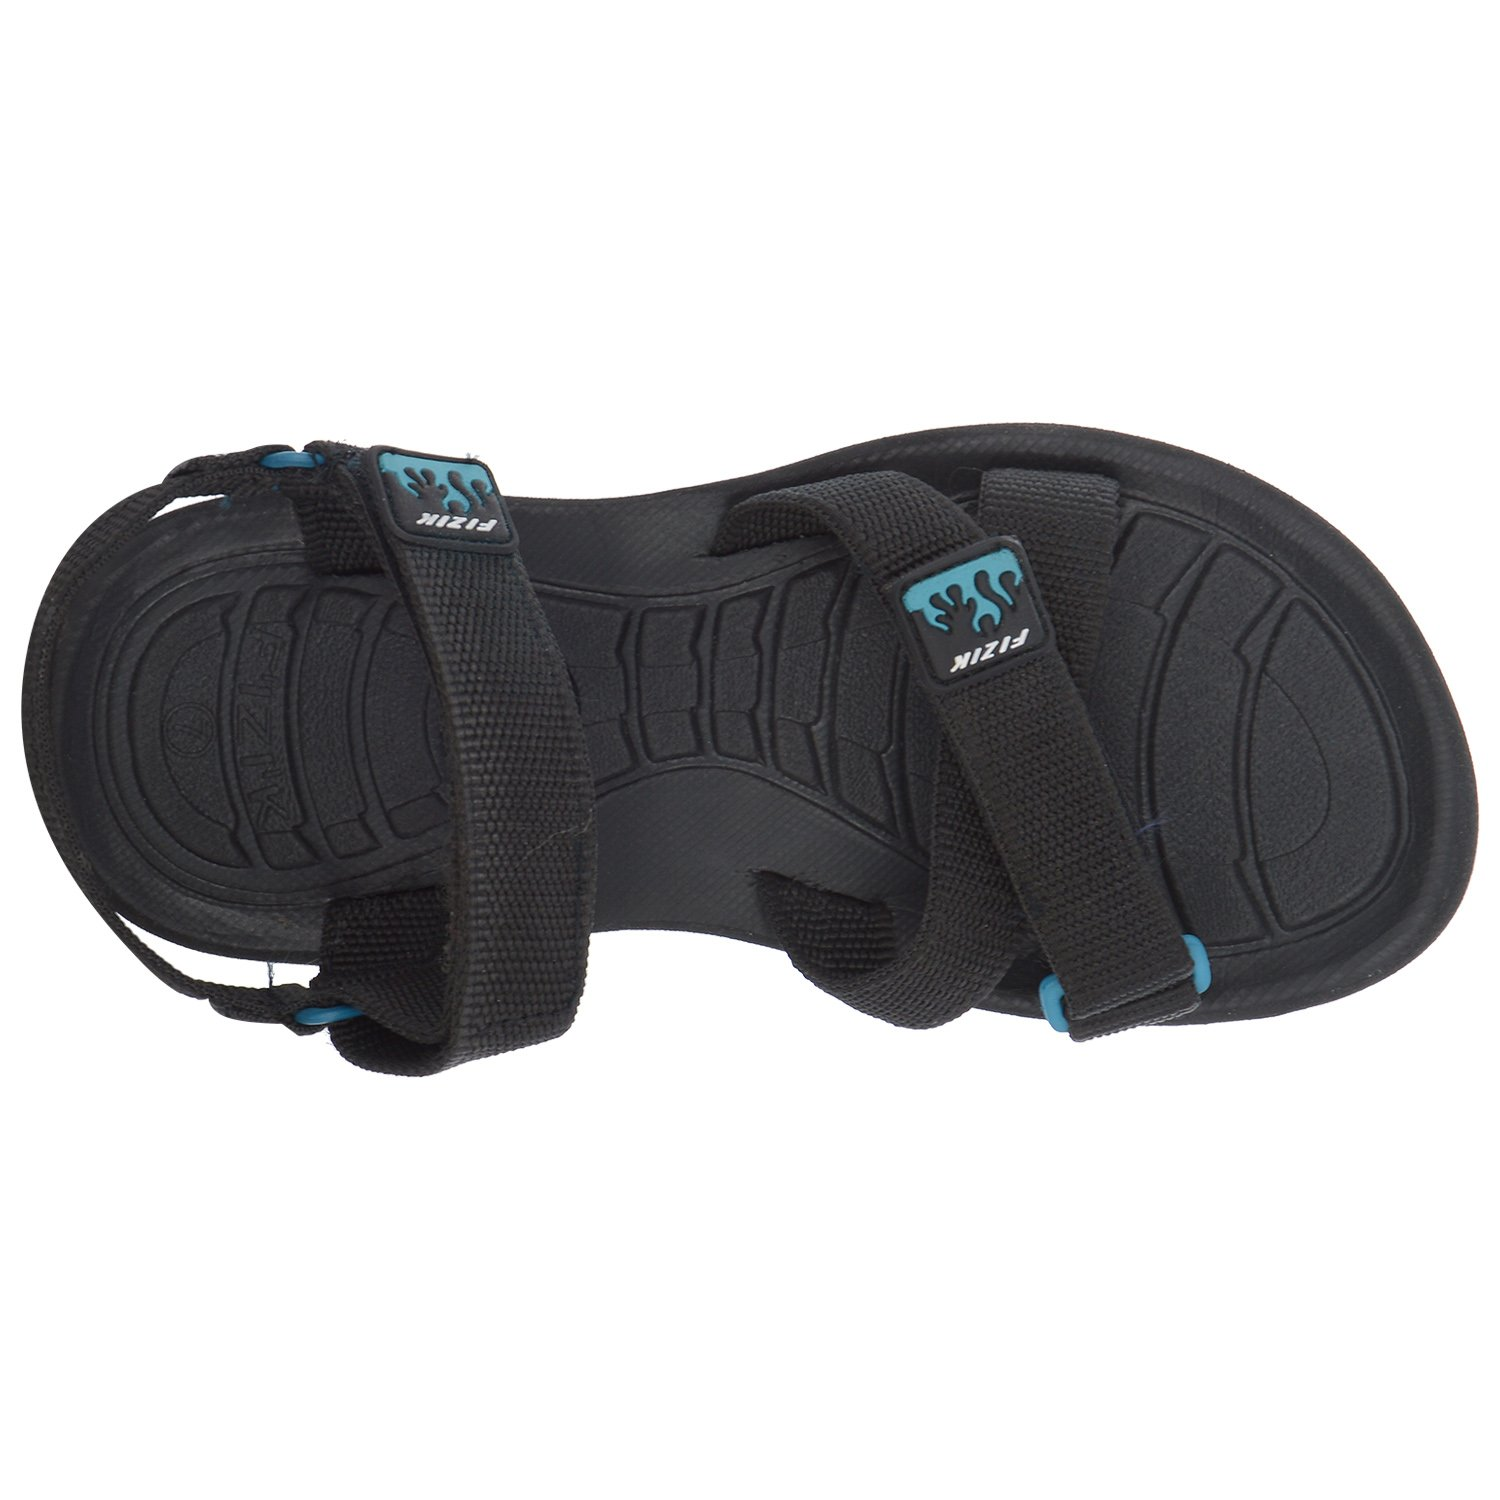 Fizik Mens Aqua Eva Sandals 8 Buy Online At Low Prices In India Introduction To 7400 Series Digital Logic Devices Fizix